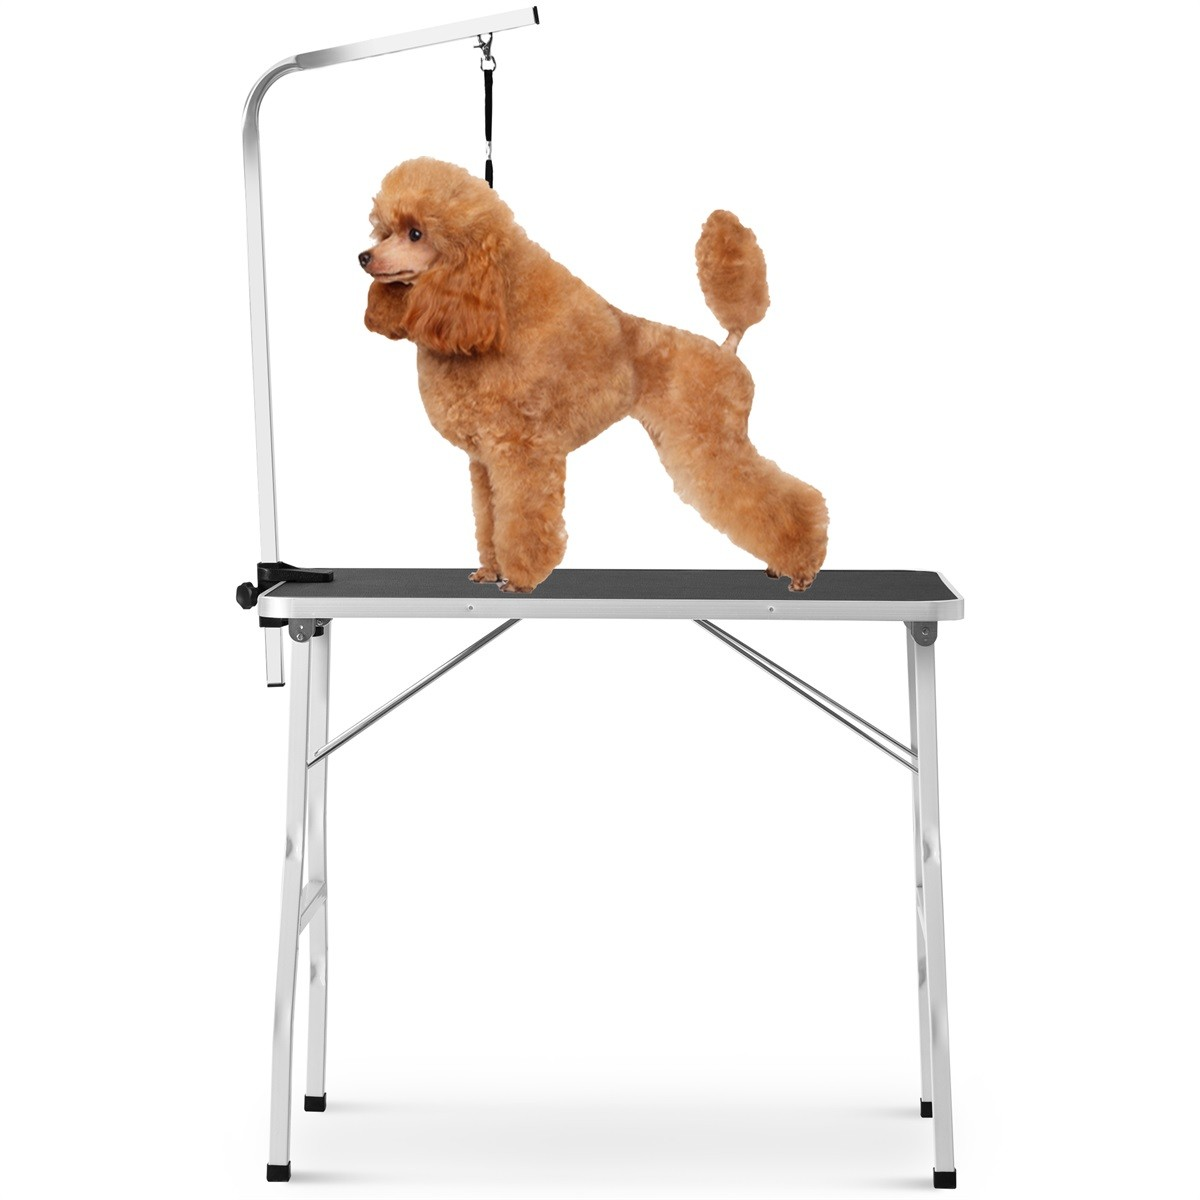 Modernluxe 36 Pet Grooming Table With Arm